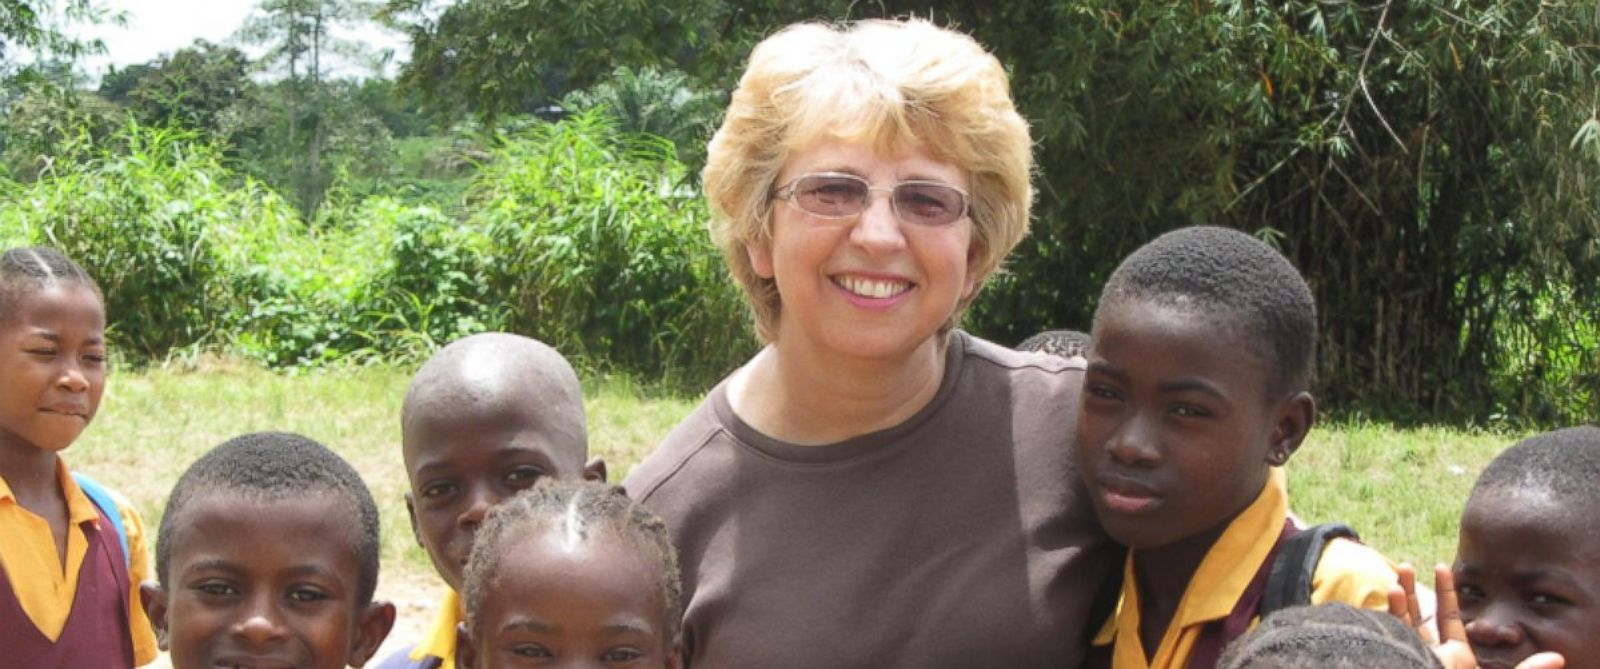 PHOTO: This Oct. 7, 2013 photo provided by Jeremy Writebol shows his mother, Nancy Writebol, with children in Liberia.